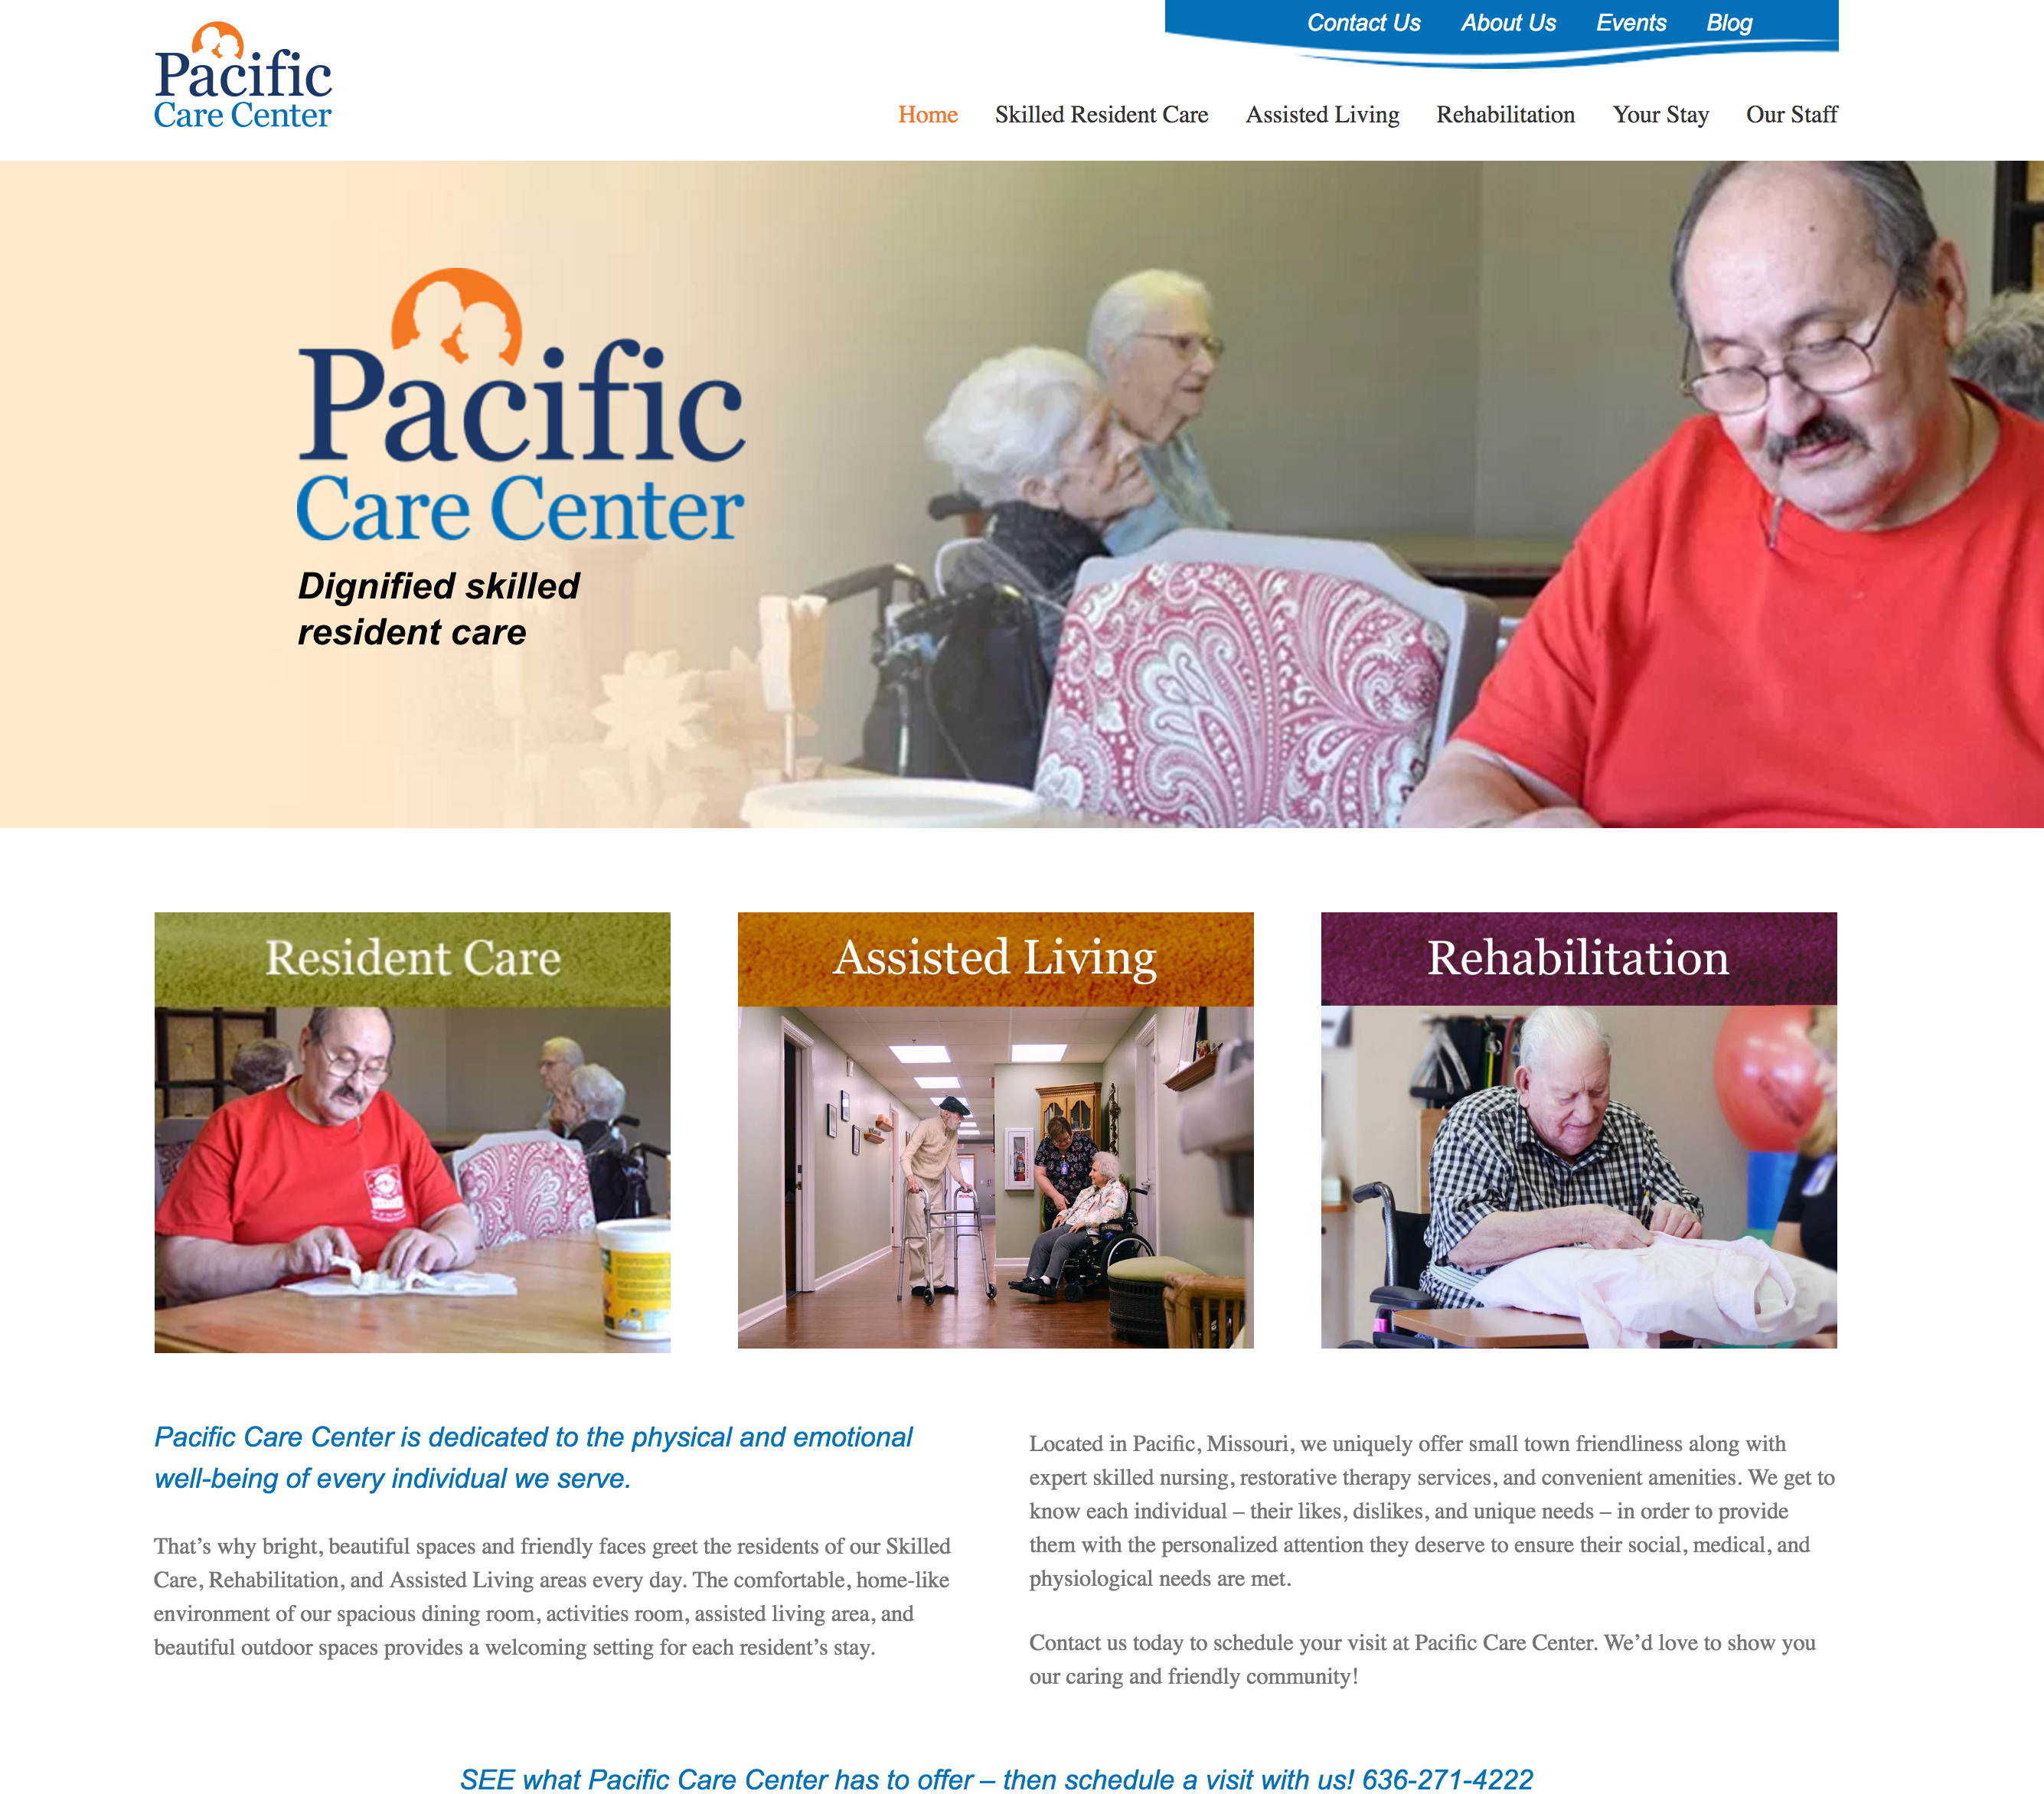 Pacific Care Center Website